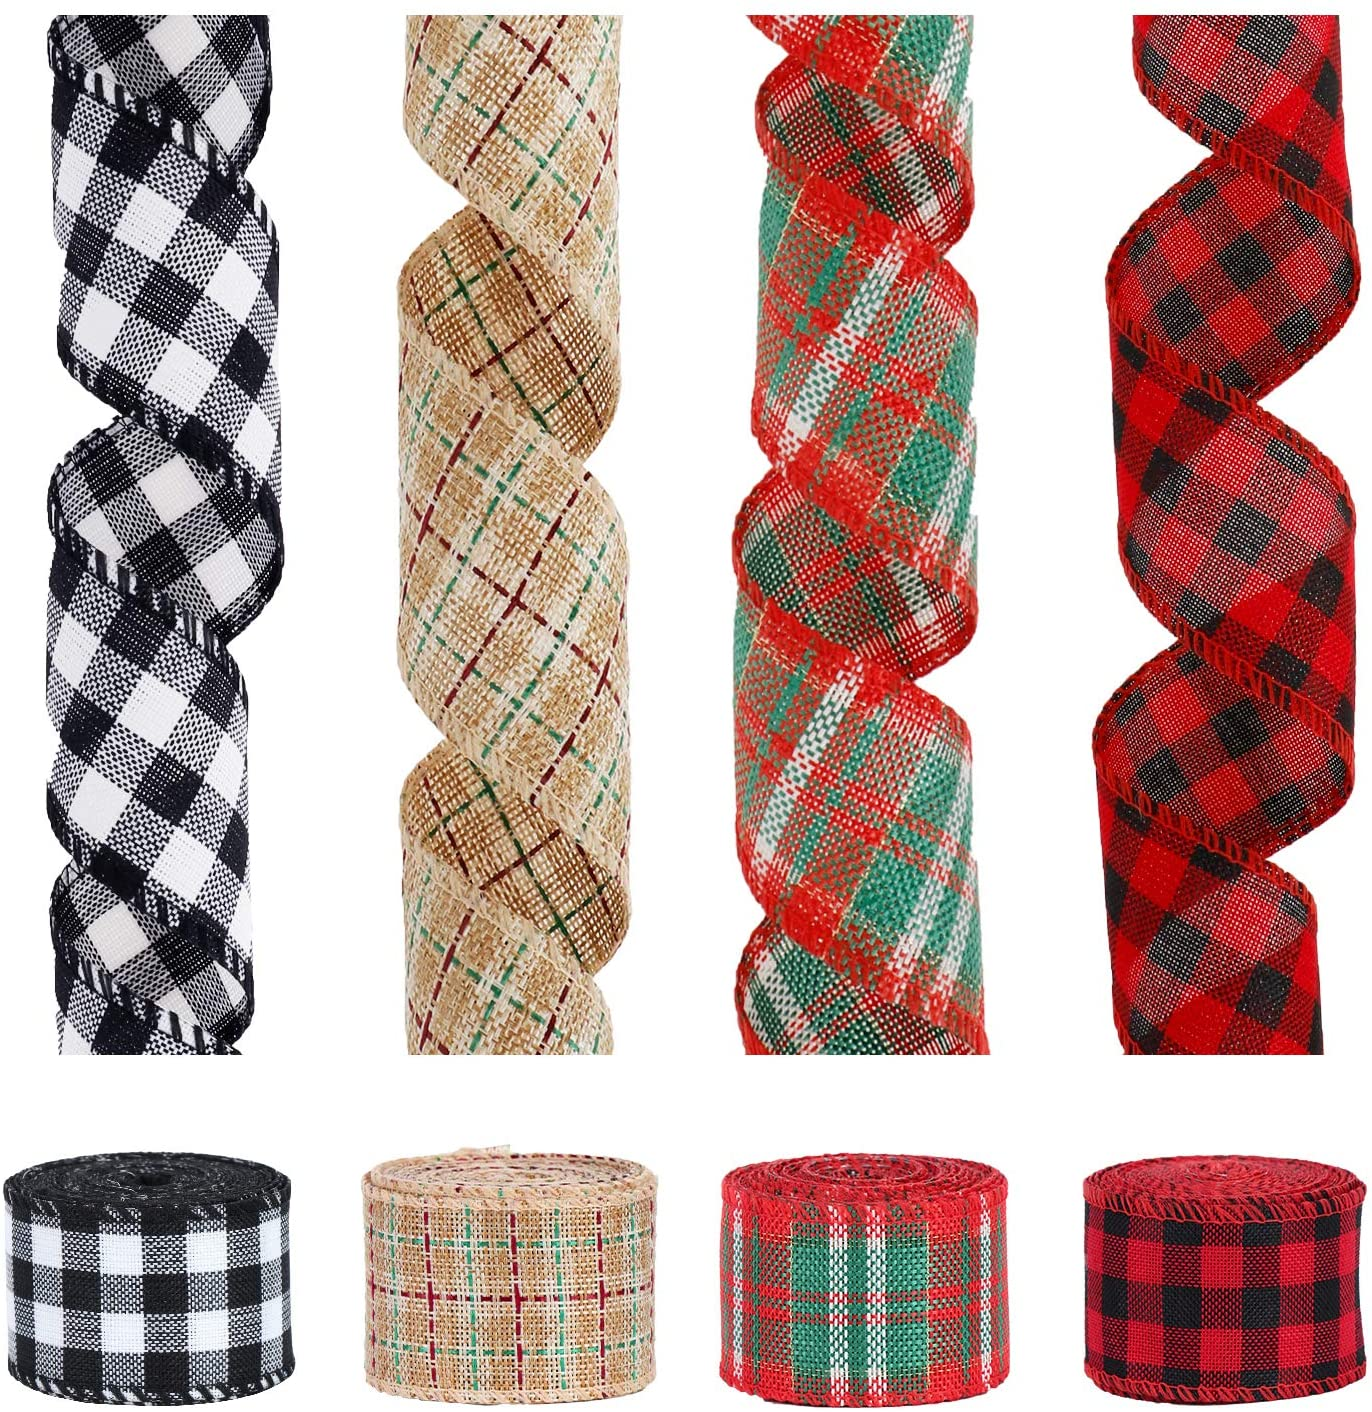 4 Rolls Plaid Burlap Ribbon Roll- 6.5 Yards 2'' Wide Wired Edge Weave Ribbon, Multi-Color Plaid Burlap Ribbon for Christmas Tree Ribbon Wreath Bows Gift Wrapping Decor